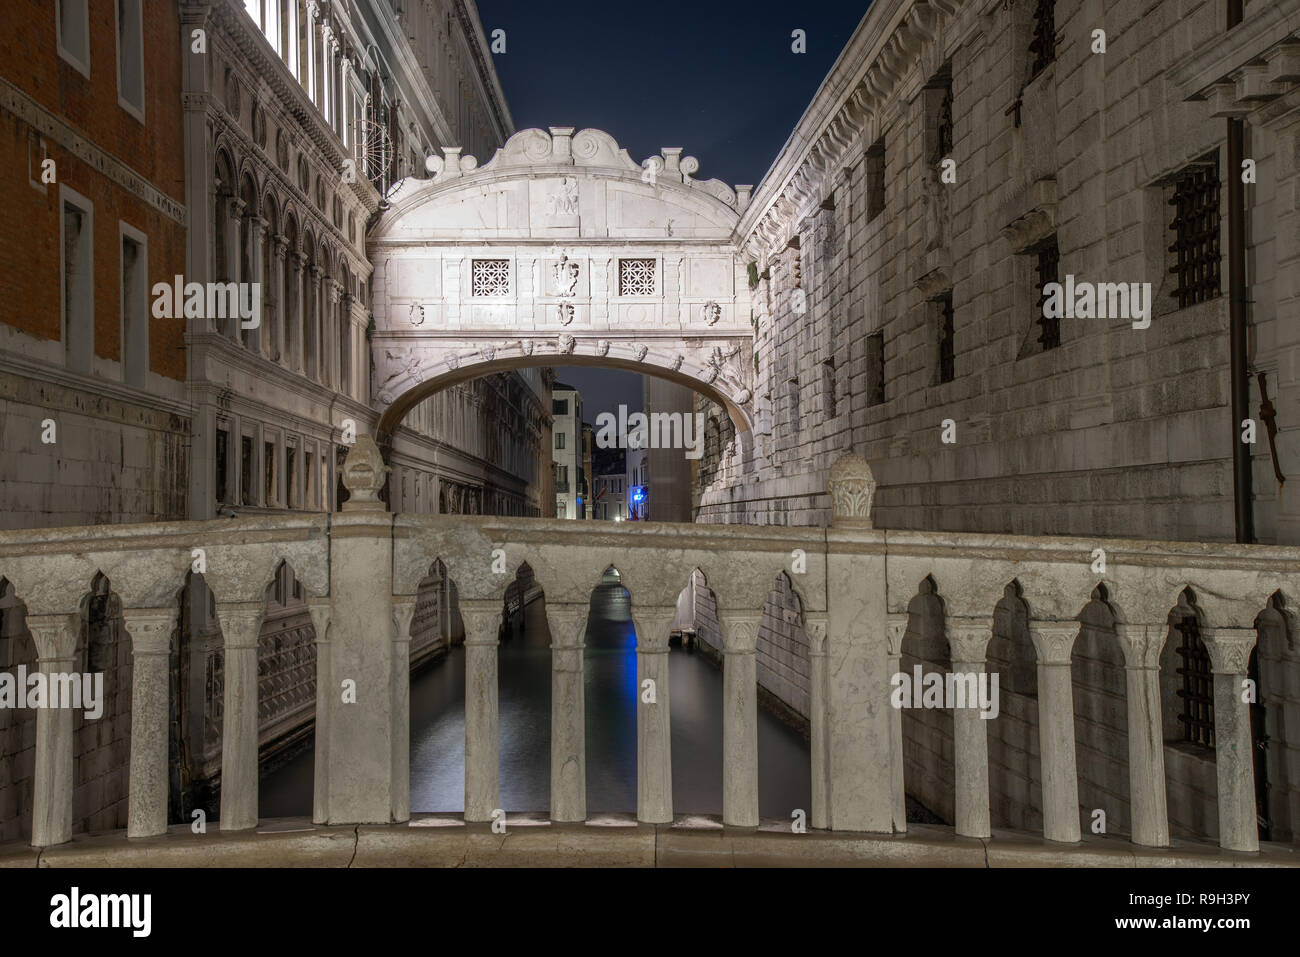 Night view of the Bridge of Sighs Venice, Italy. The view from the Bridge of Sighs was the last view of Venice that convicts saw before their imprison - Stock Image